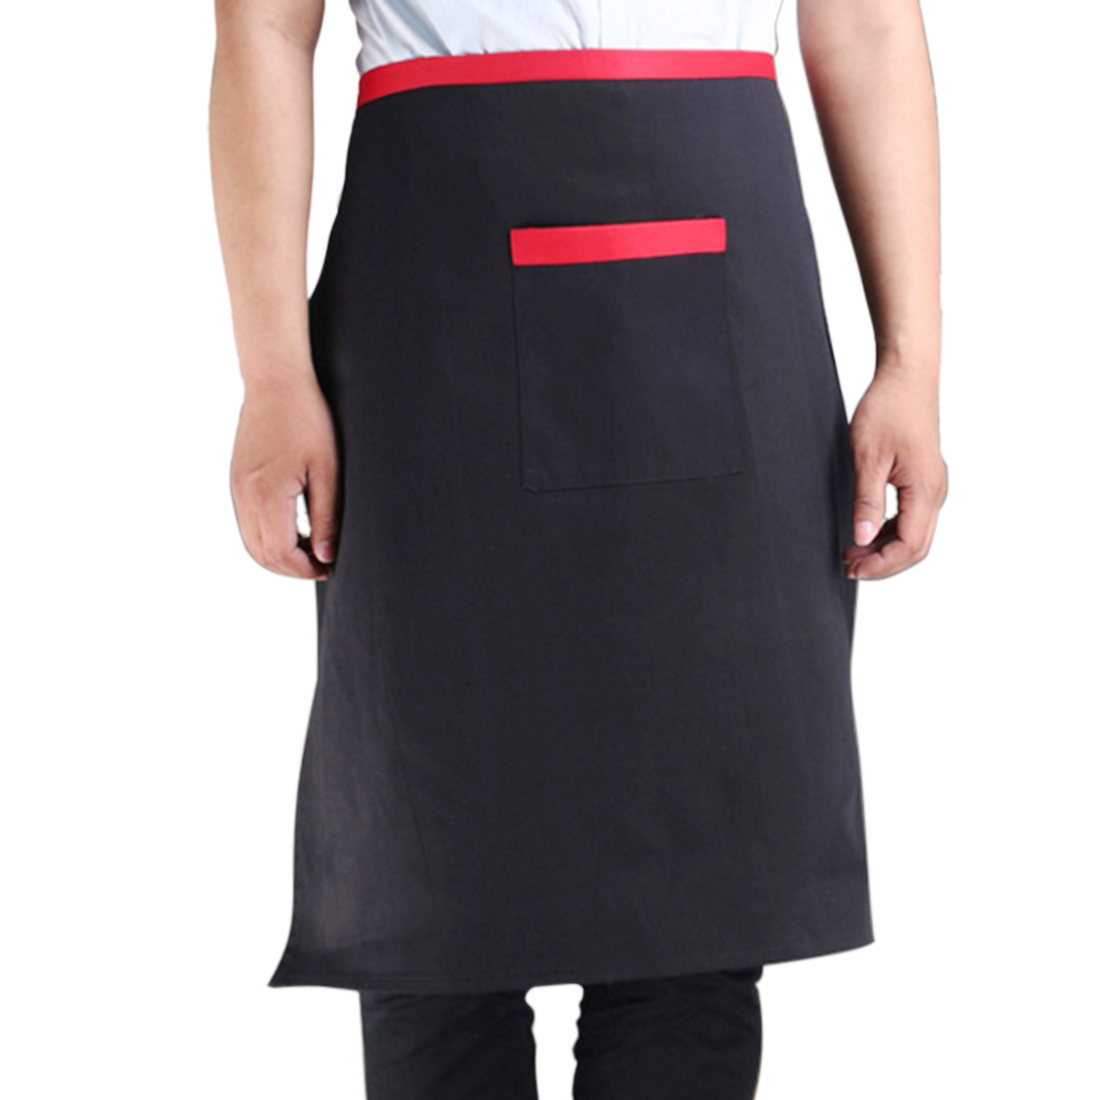 Coffee Shop Restaurant Cook Chef Man Fabric Pocket Apron Bib Black 70 x 70cm